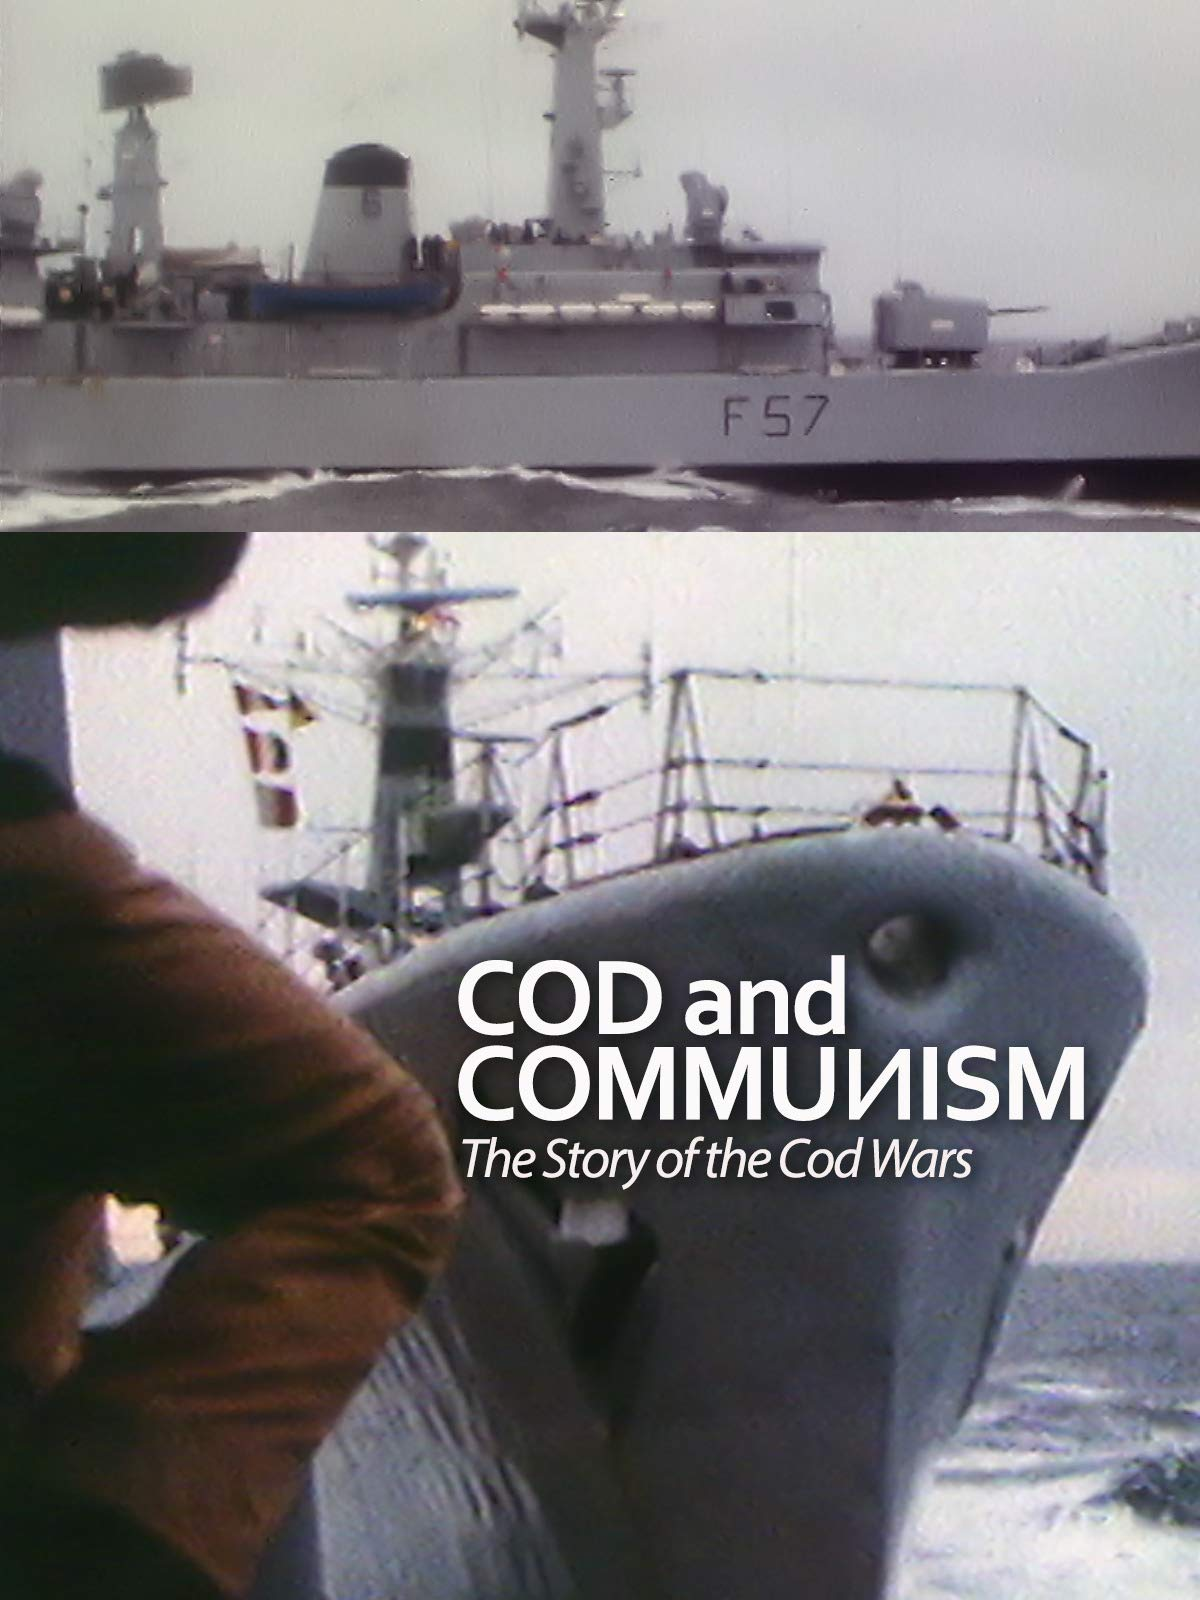 Cod and Communism - The Story of the Cod Wars on Amazon Prime Video UK